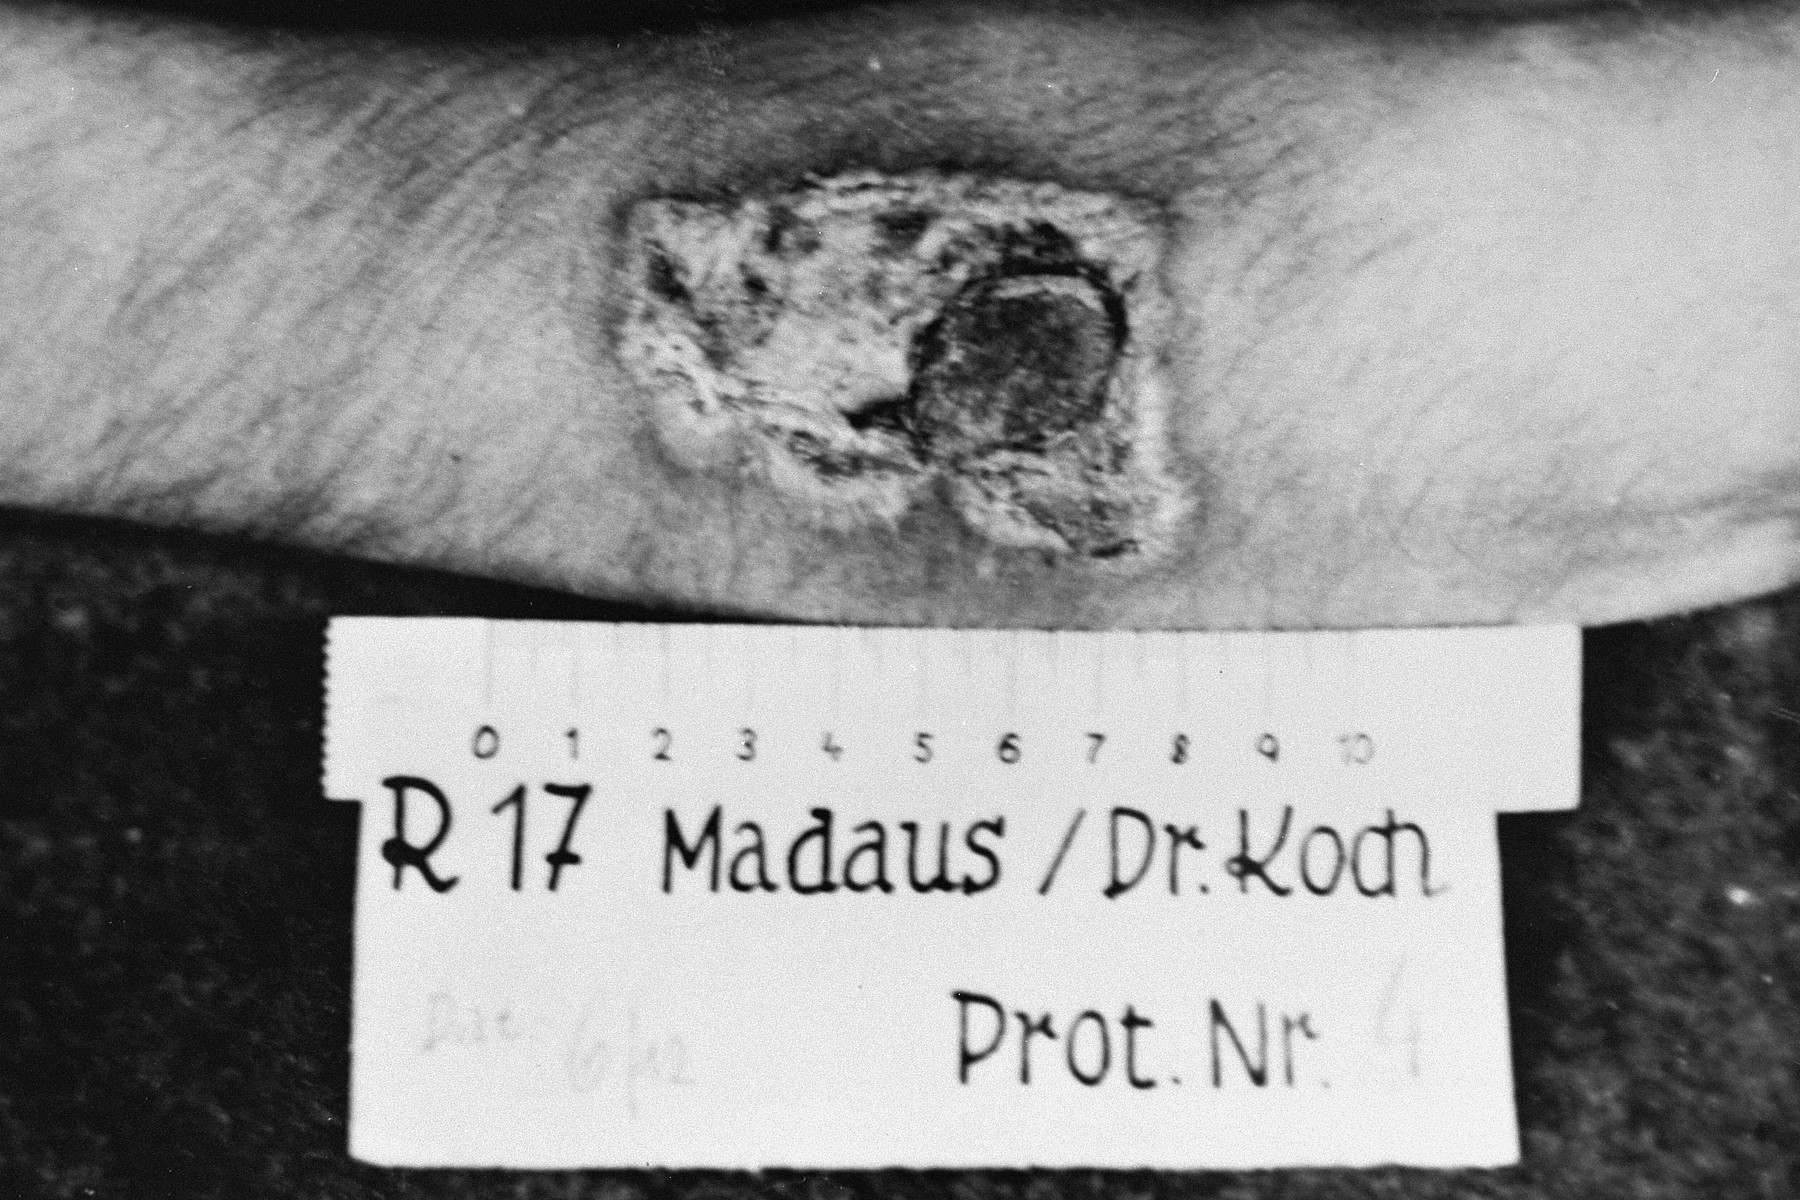 A photograph of the results of a medical experiment dealing with phosphorous that was carried out by doctors at Ravensbrueck.    In the experiment, a mixture of phosphorus and rubber was applied to the skin and ignited.  After twenty seconds, the fire was extinguished with water and then wiped with R17.  After three days, the burn was treated with Echinacin in liquid form.  After two weeks the wound had healed.  This photograph, taken by a camp physician, was entered as evidence during the Doctors Trial at Nuremberg.